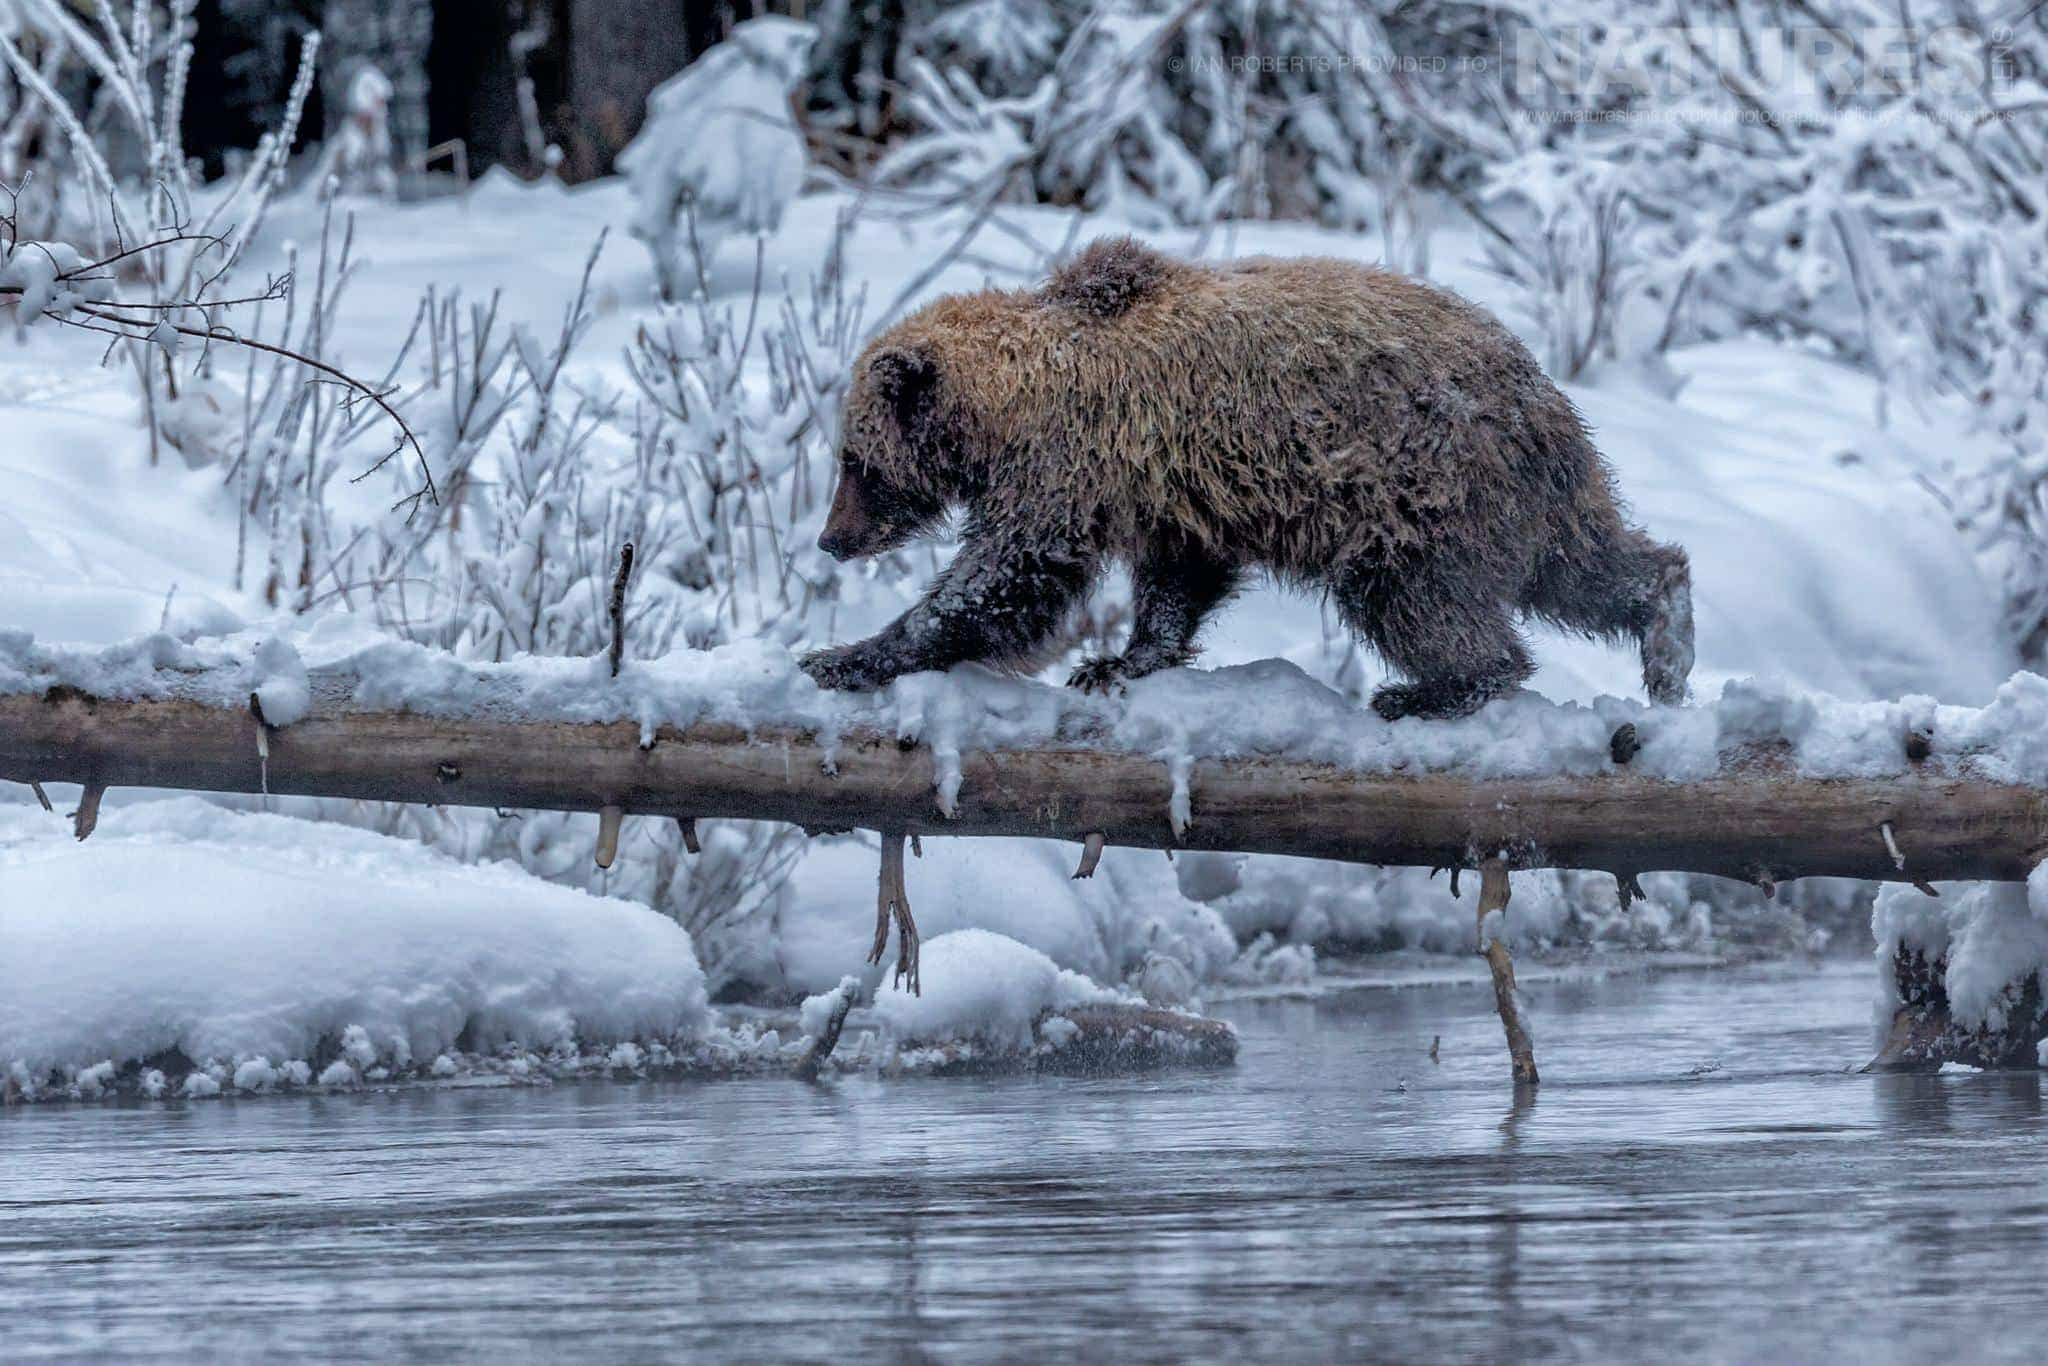 A Young Male Grizzly Bear Walks Across A Log - Captured During The Natureslens Ice Grizzlies Of The Yukon Photography Holiday